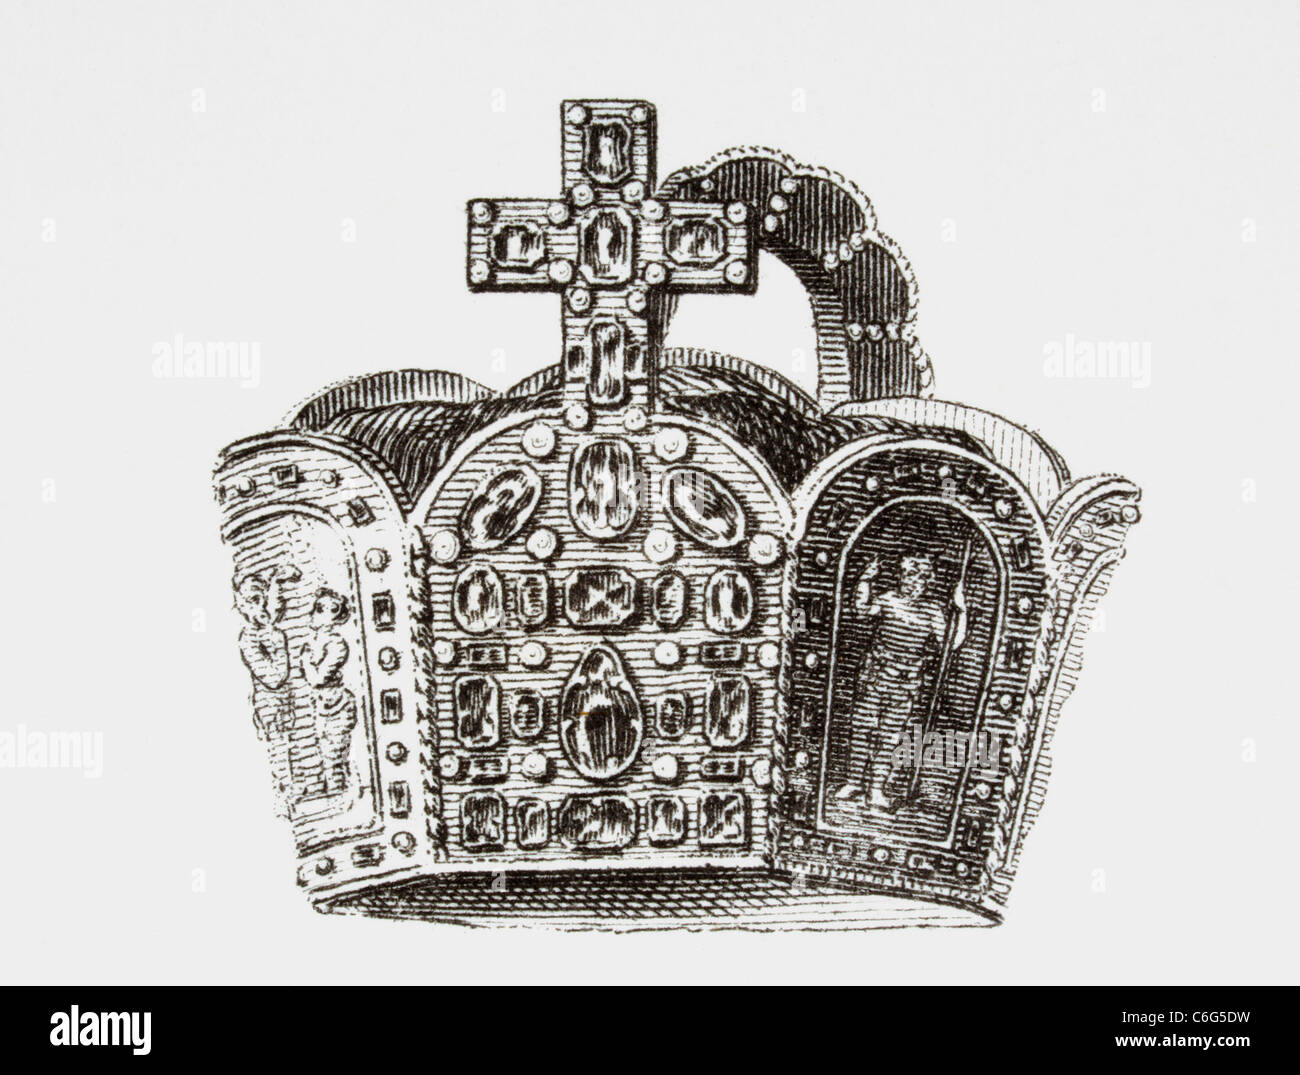 Crown of the Emperor Charlemagne. - Stock Image